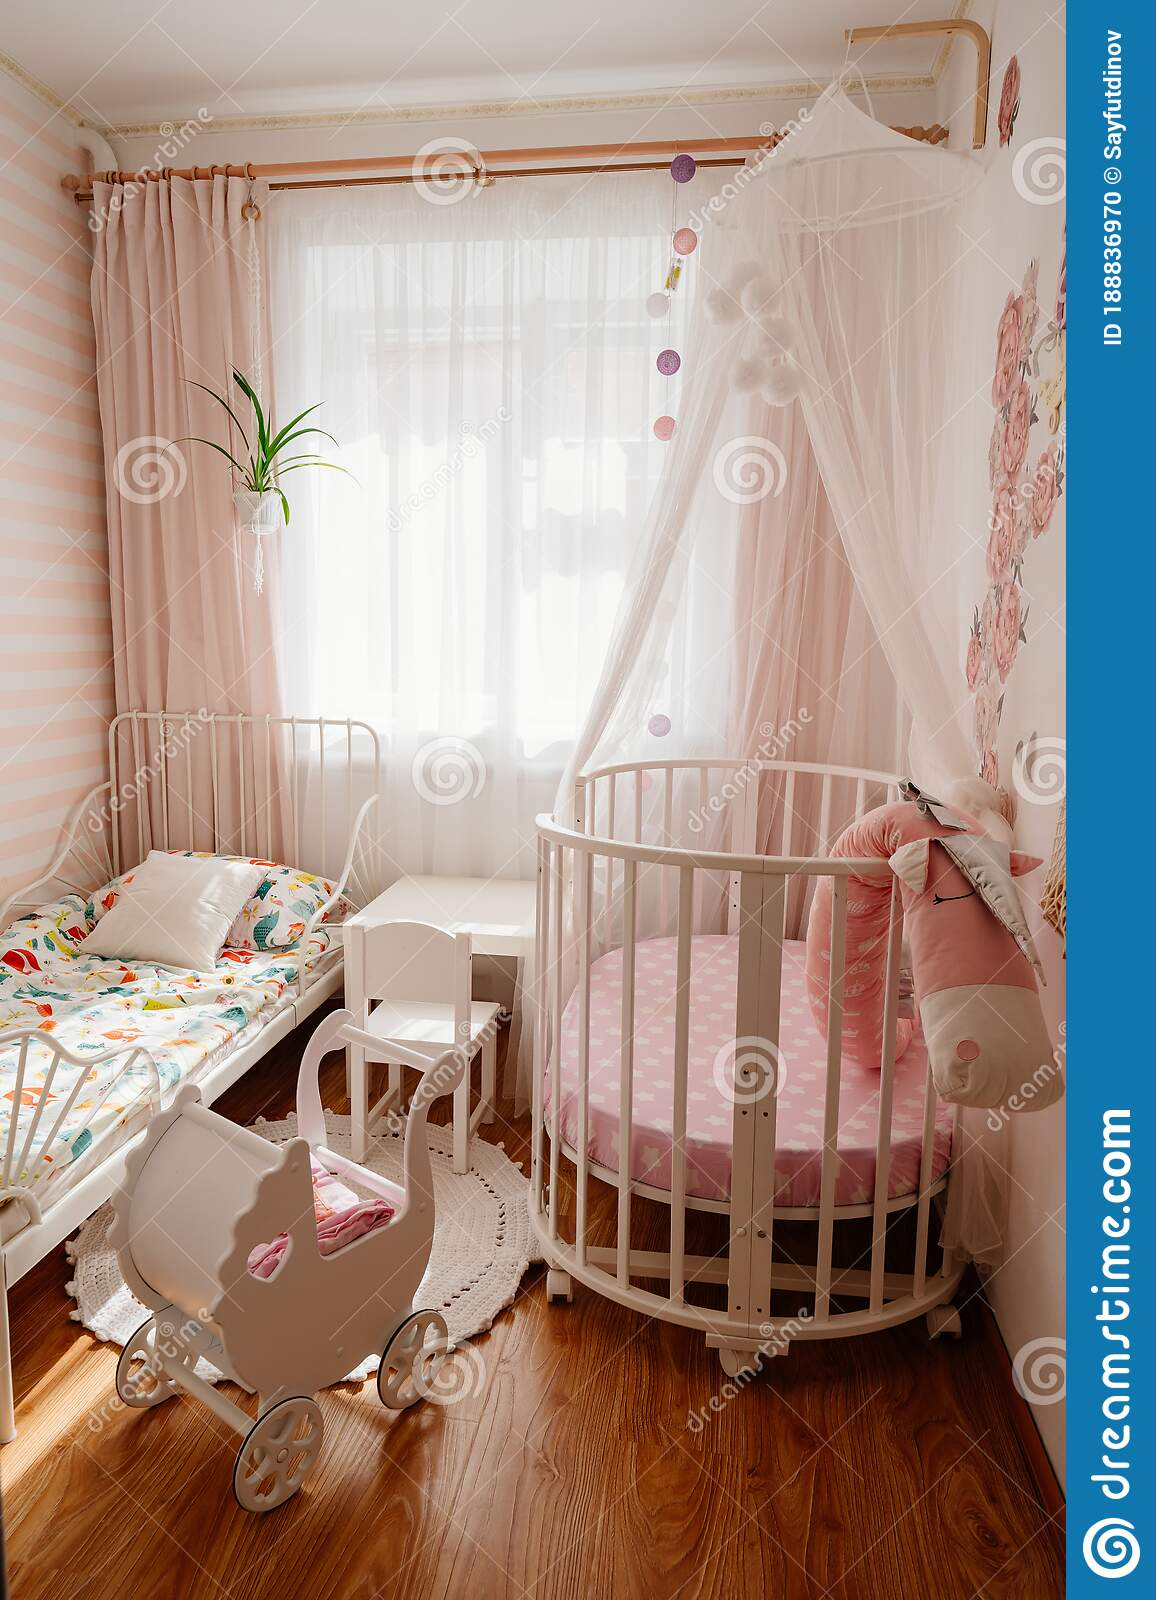 Beautiful Little Cosy White Kids Room With Two Beds For Girls Kids Stock Photo Image Of Kids Building 188836970